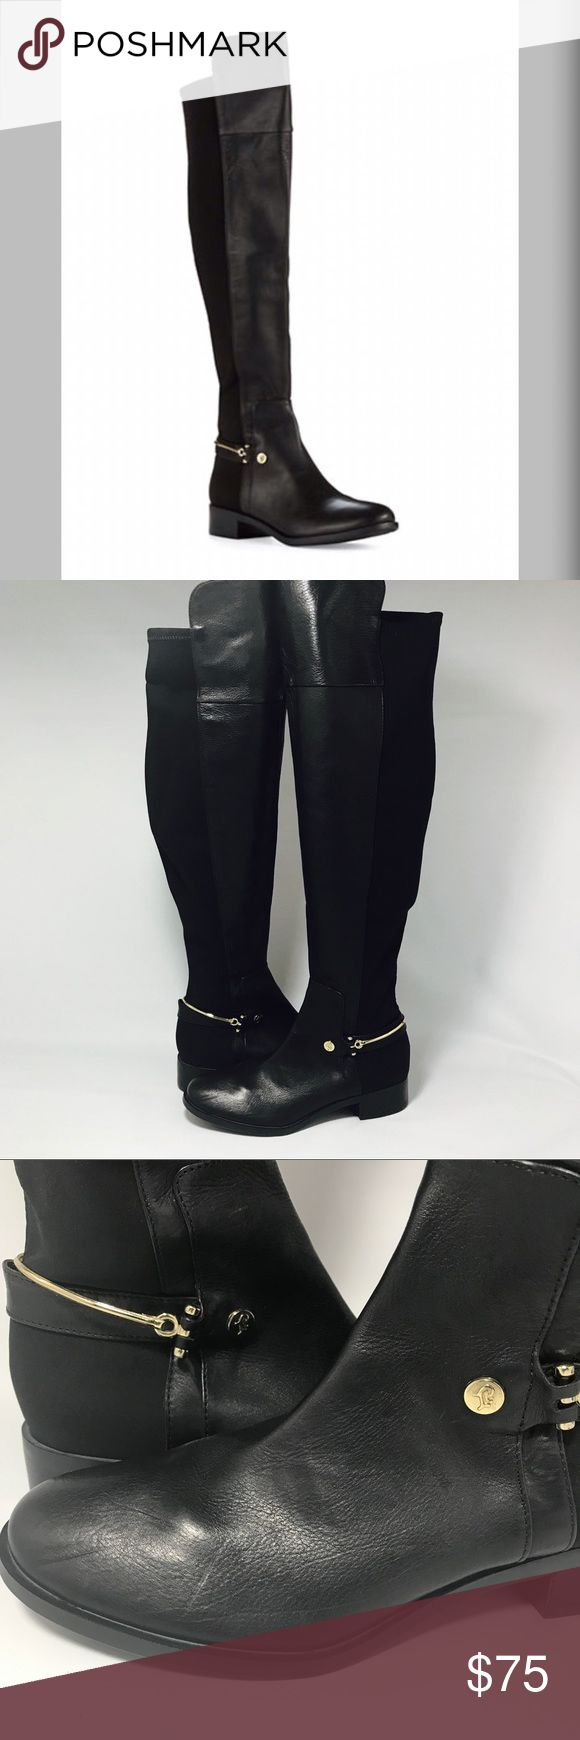 Ivanka trump riding boots sale Nice knee high riding boots these boot are new but have a few marks from storage Ivanka Trump Shoes Over the Knee Boots